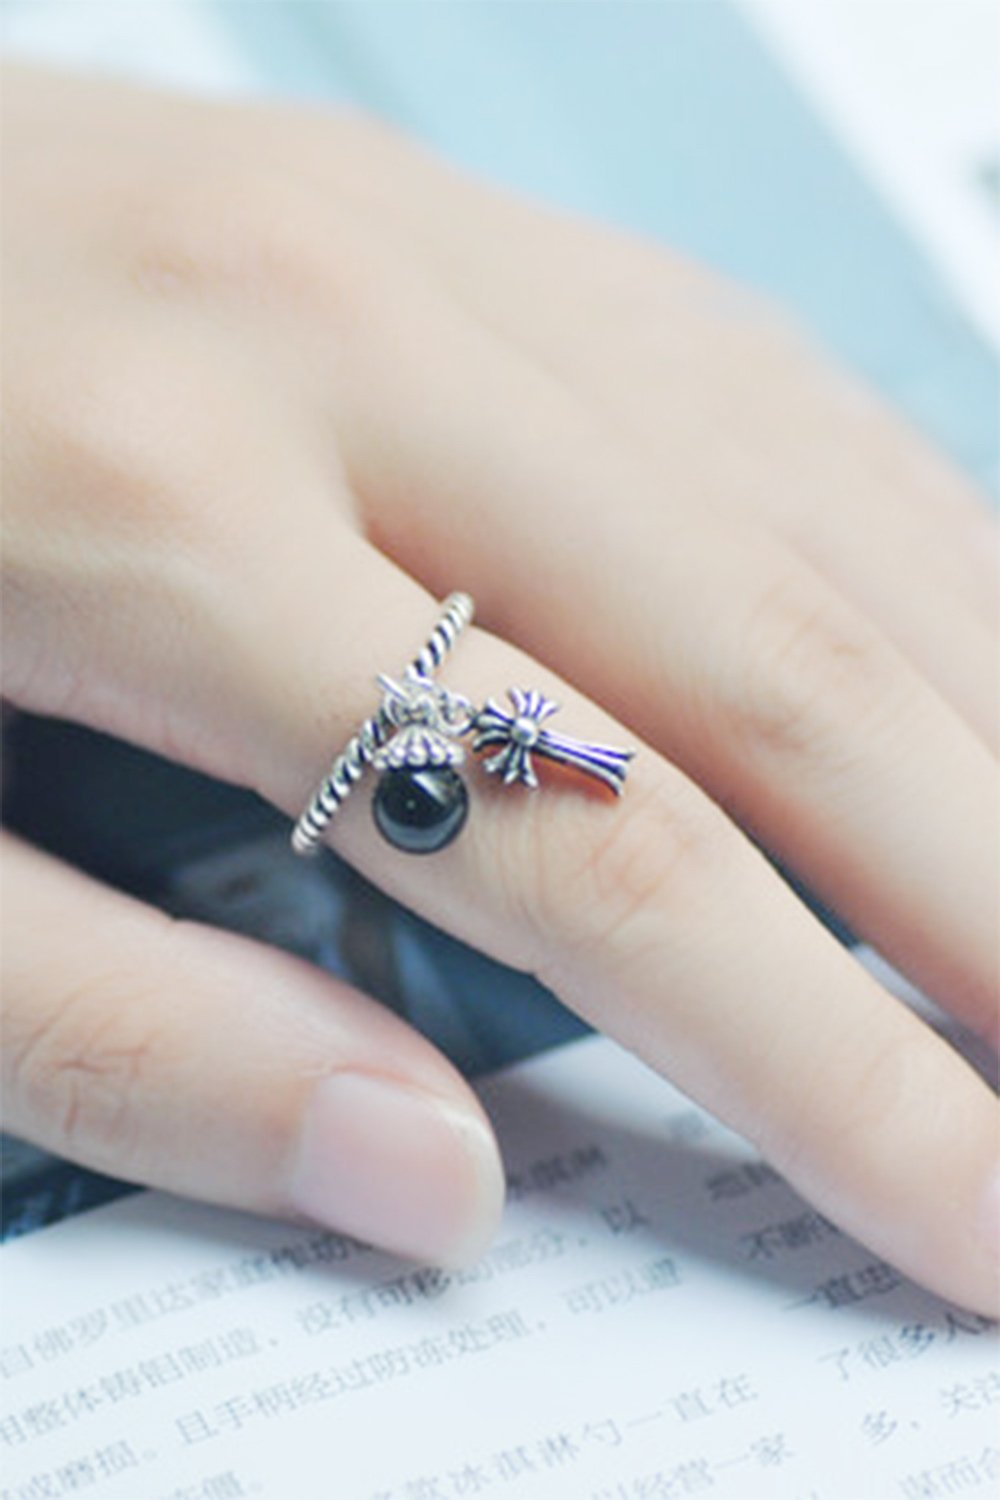 Generic [Cross] S925 silver Thai silver vintage small fresh black onyx personality finger ring women girls lady silver tassels